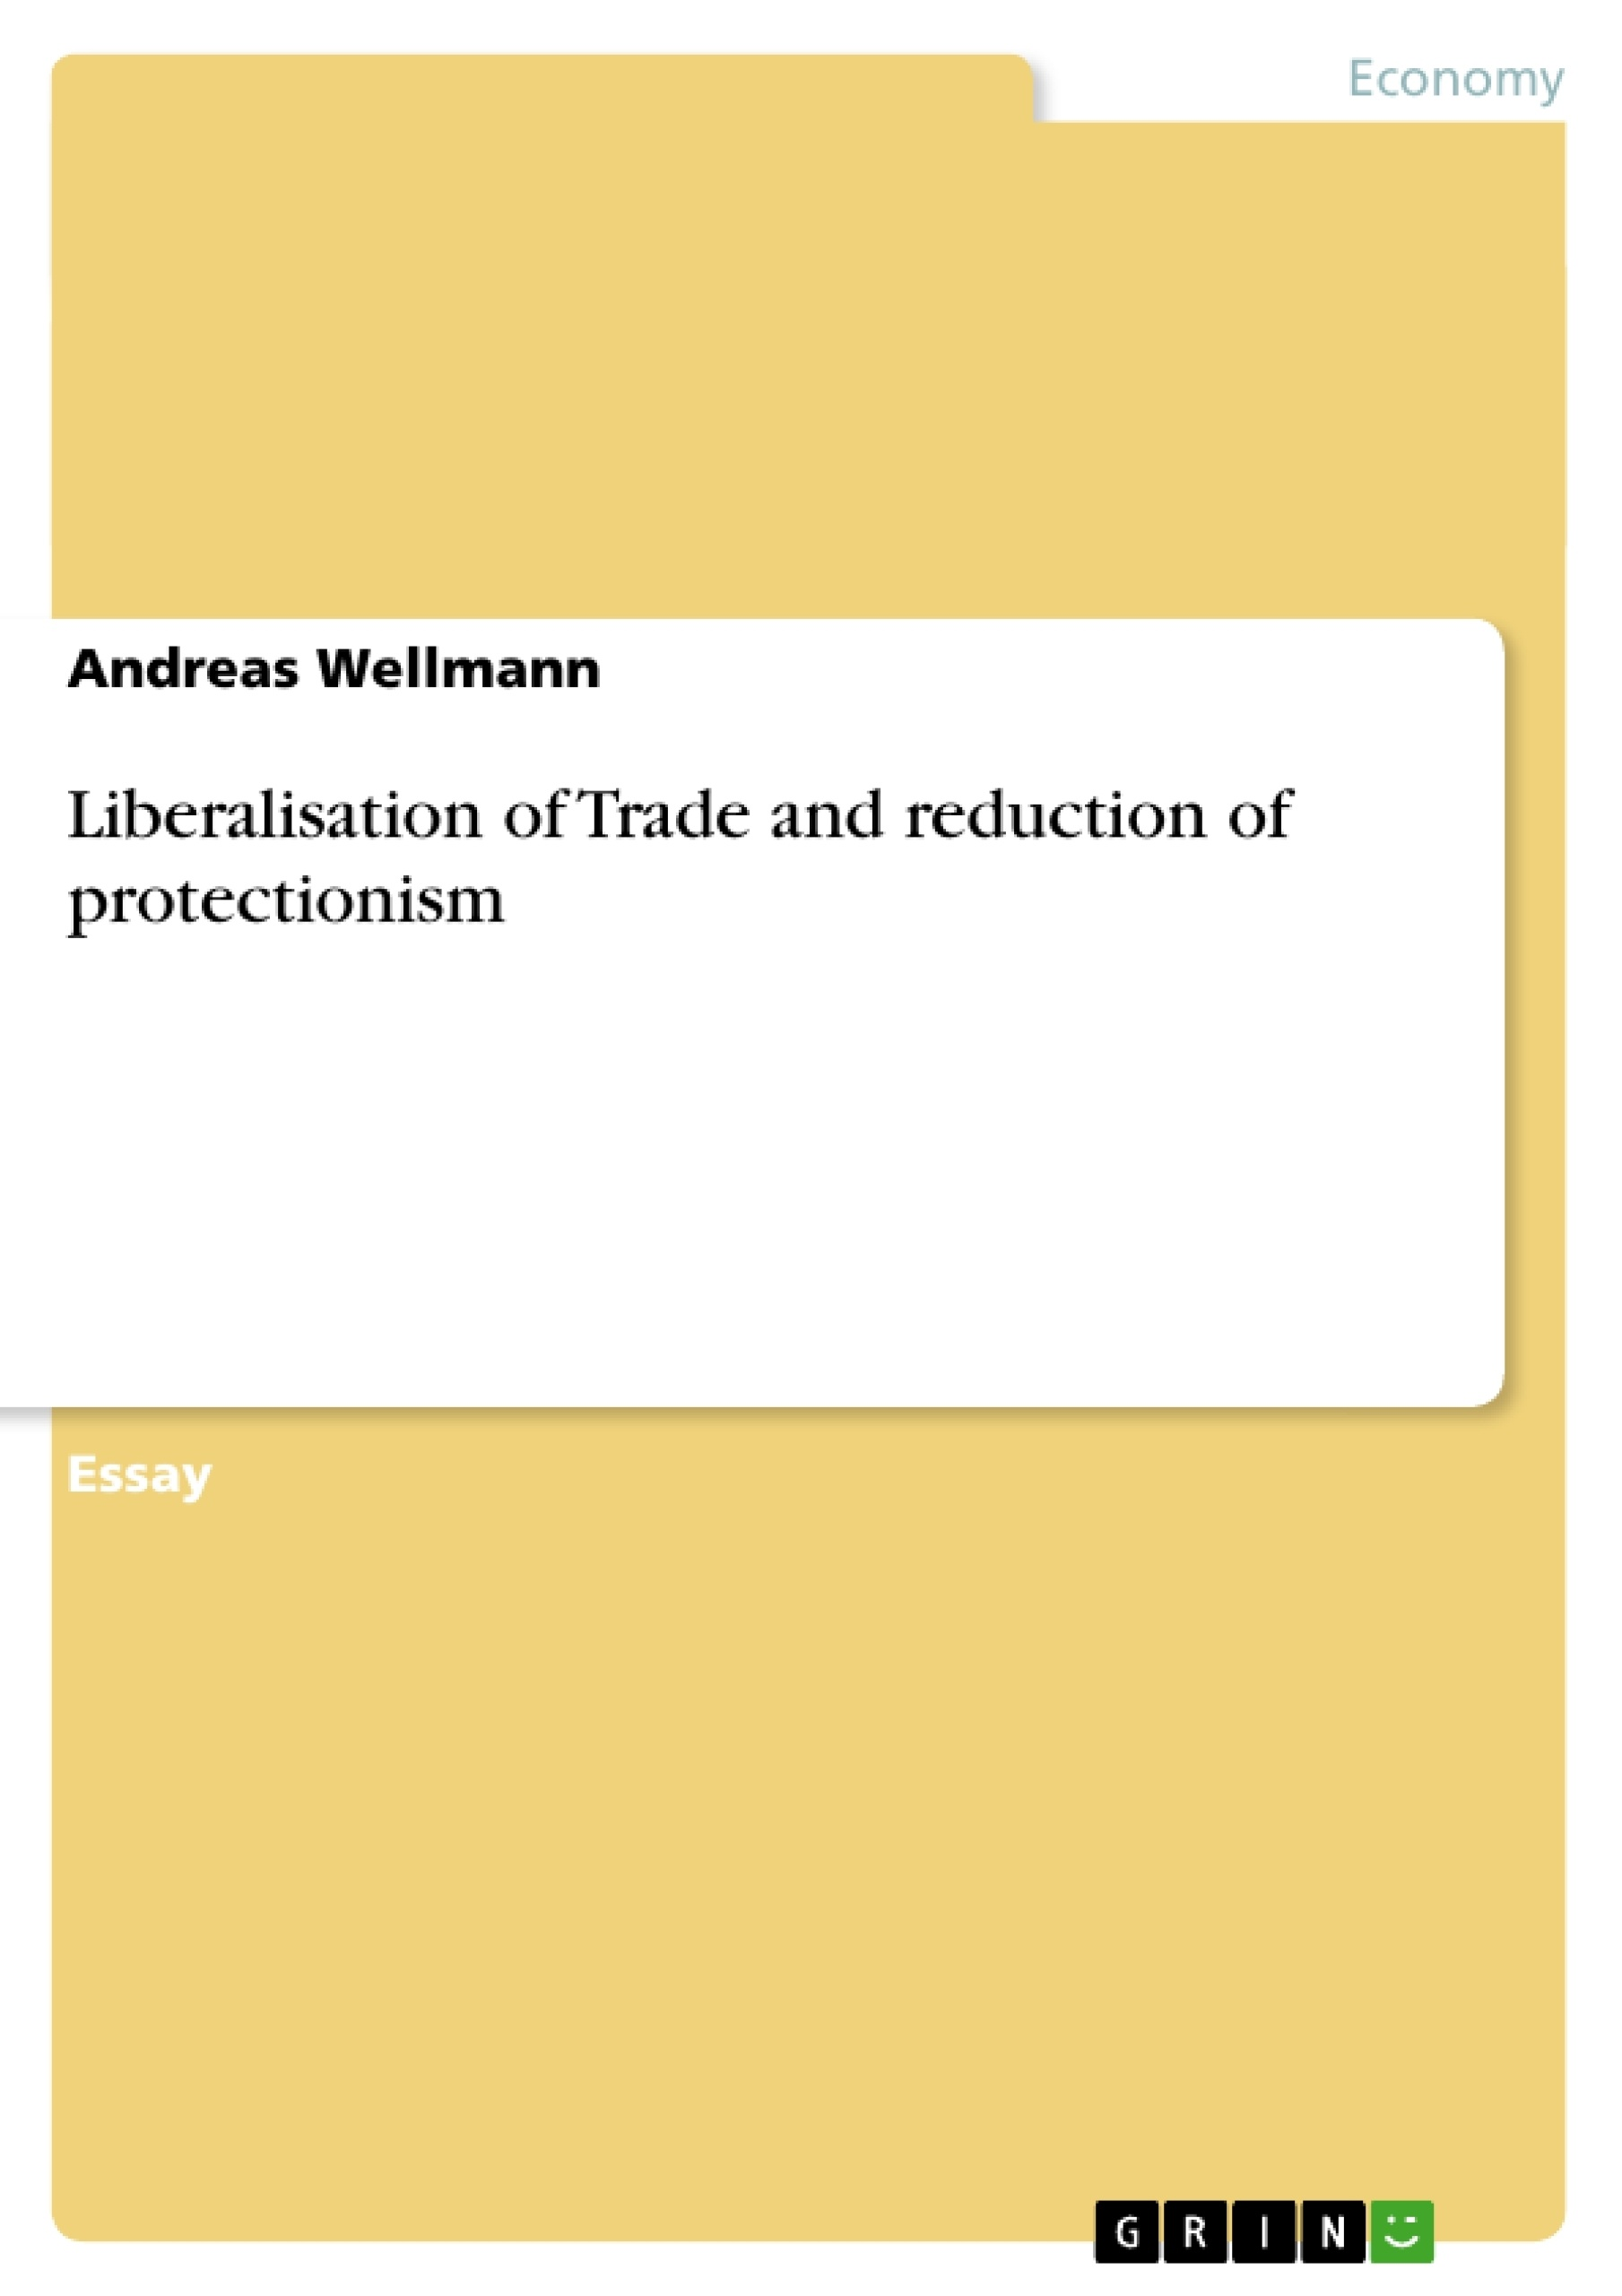 Title: Liberalisation of Trade and reduction of protectionism